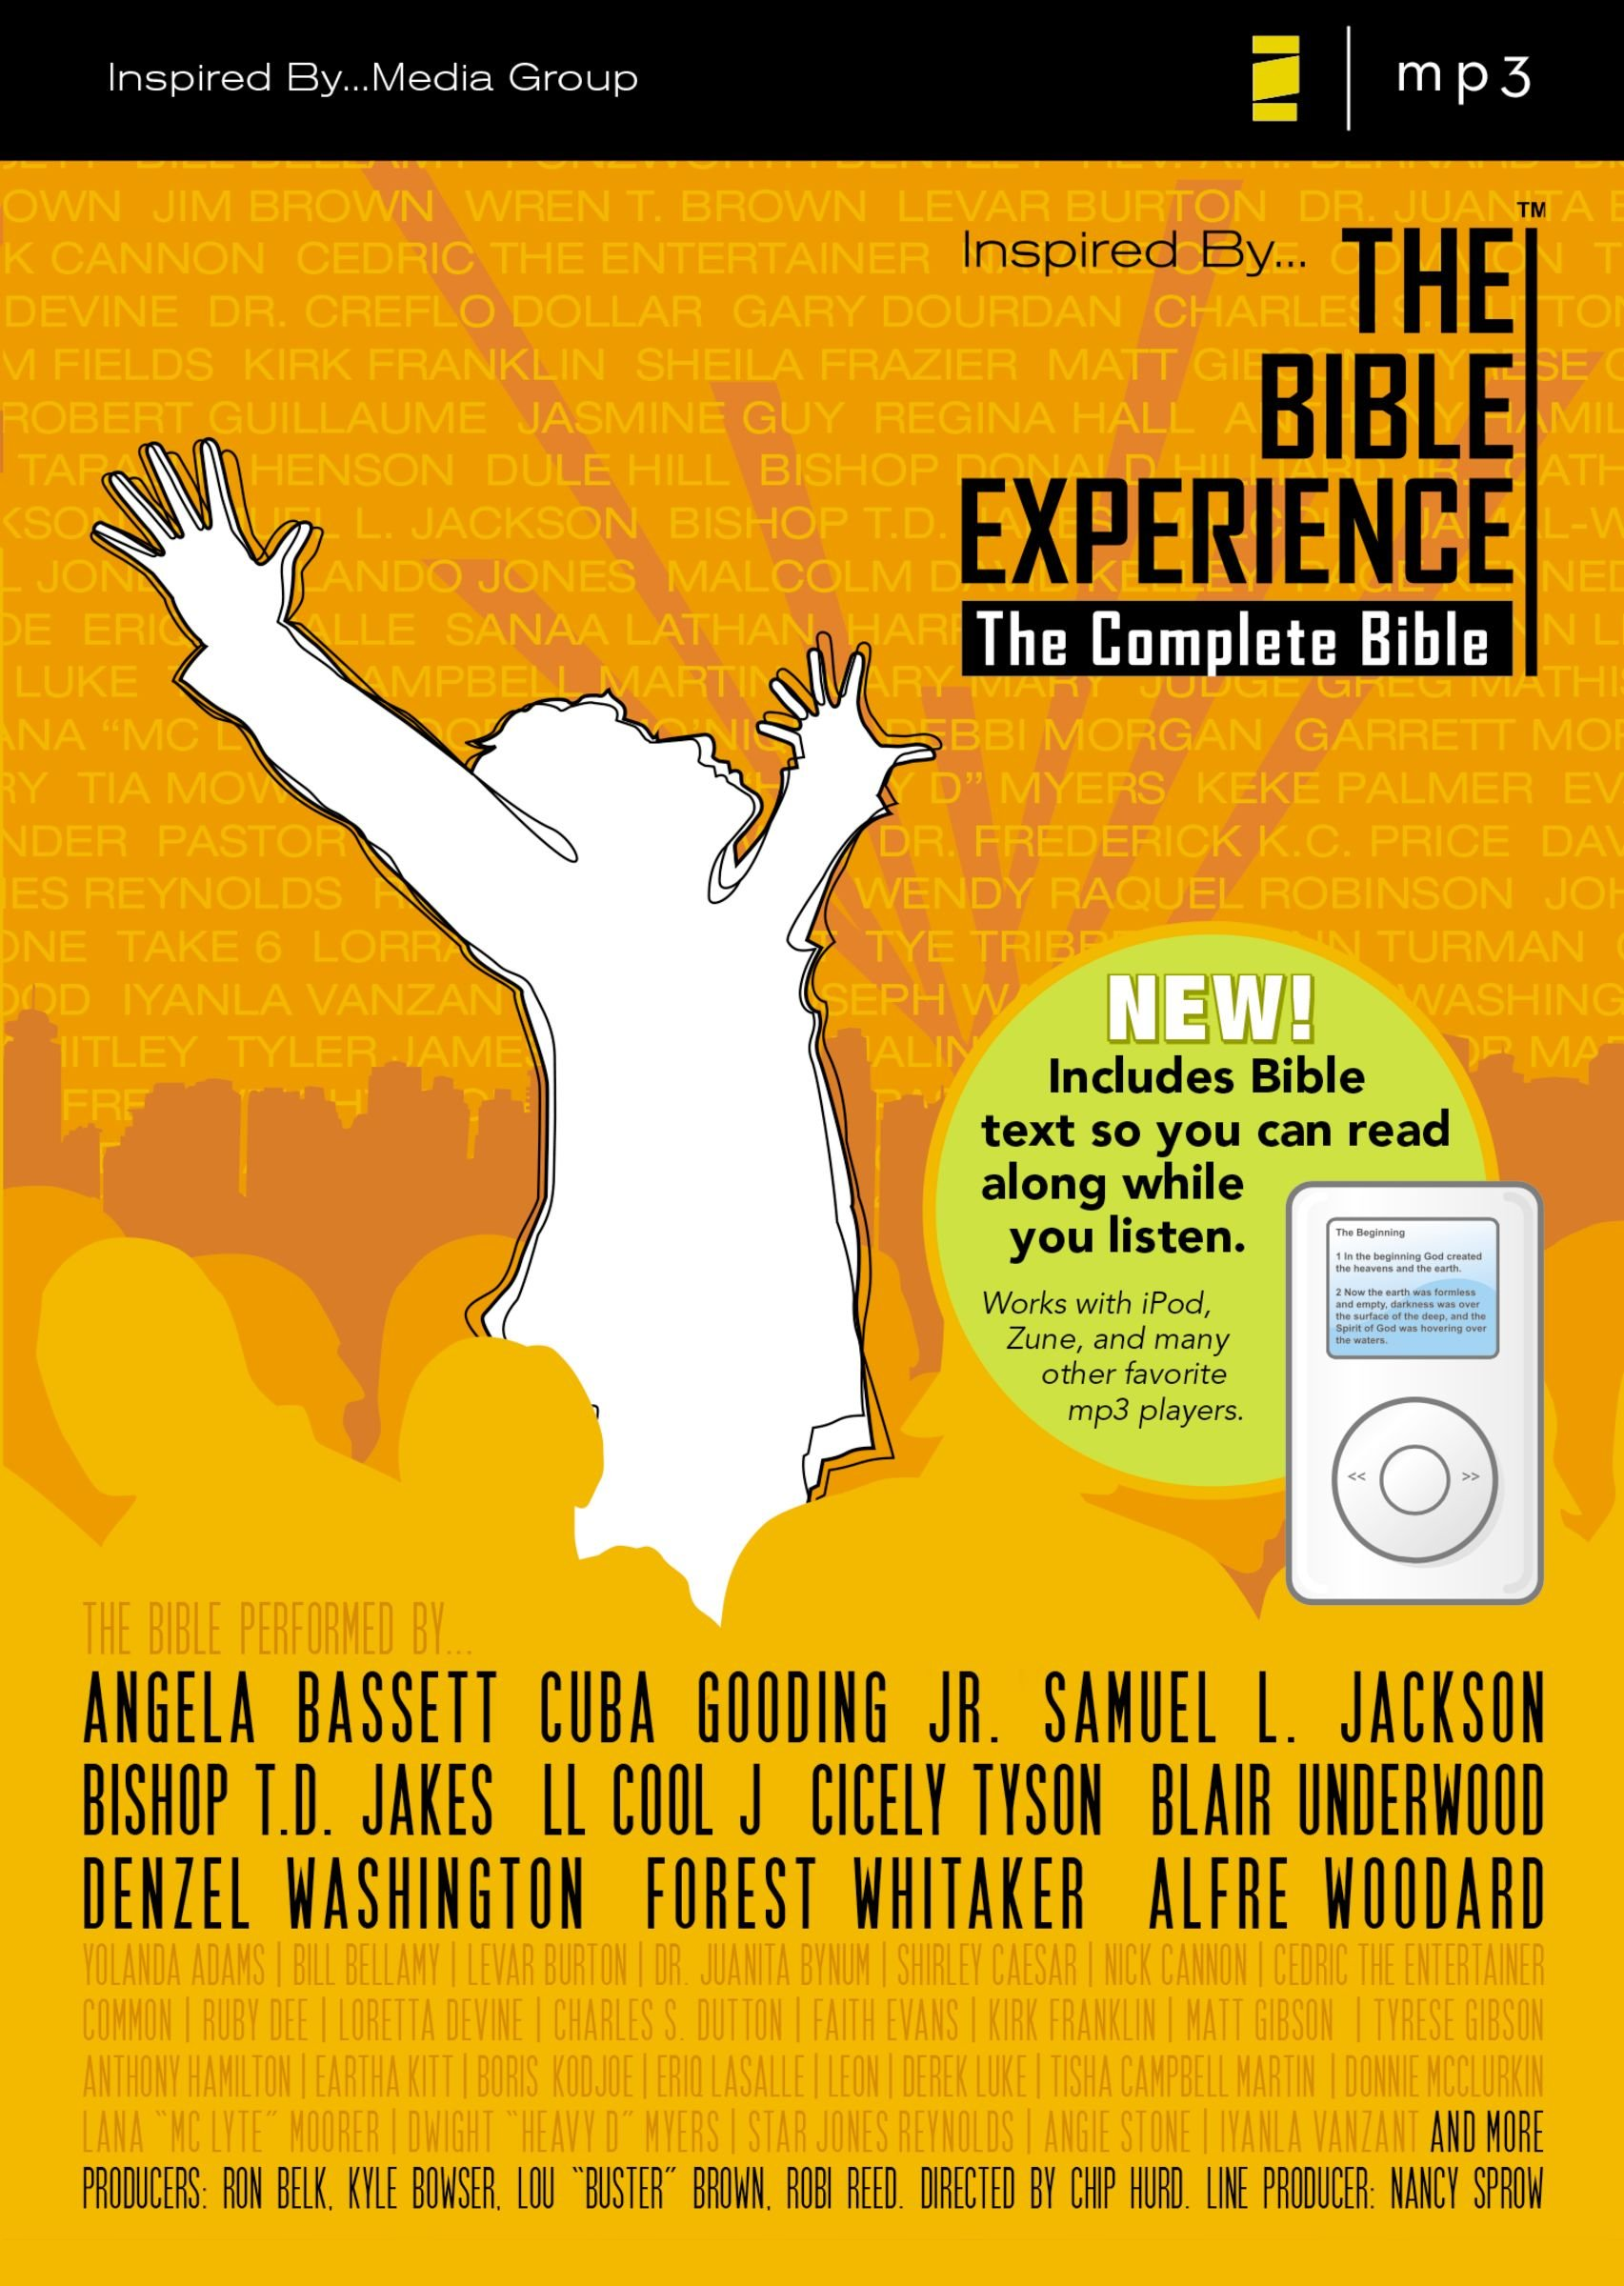 Inspired By The Bible Experience The Complete Bible Zondervan